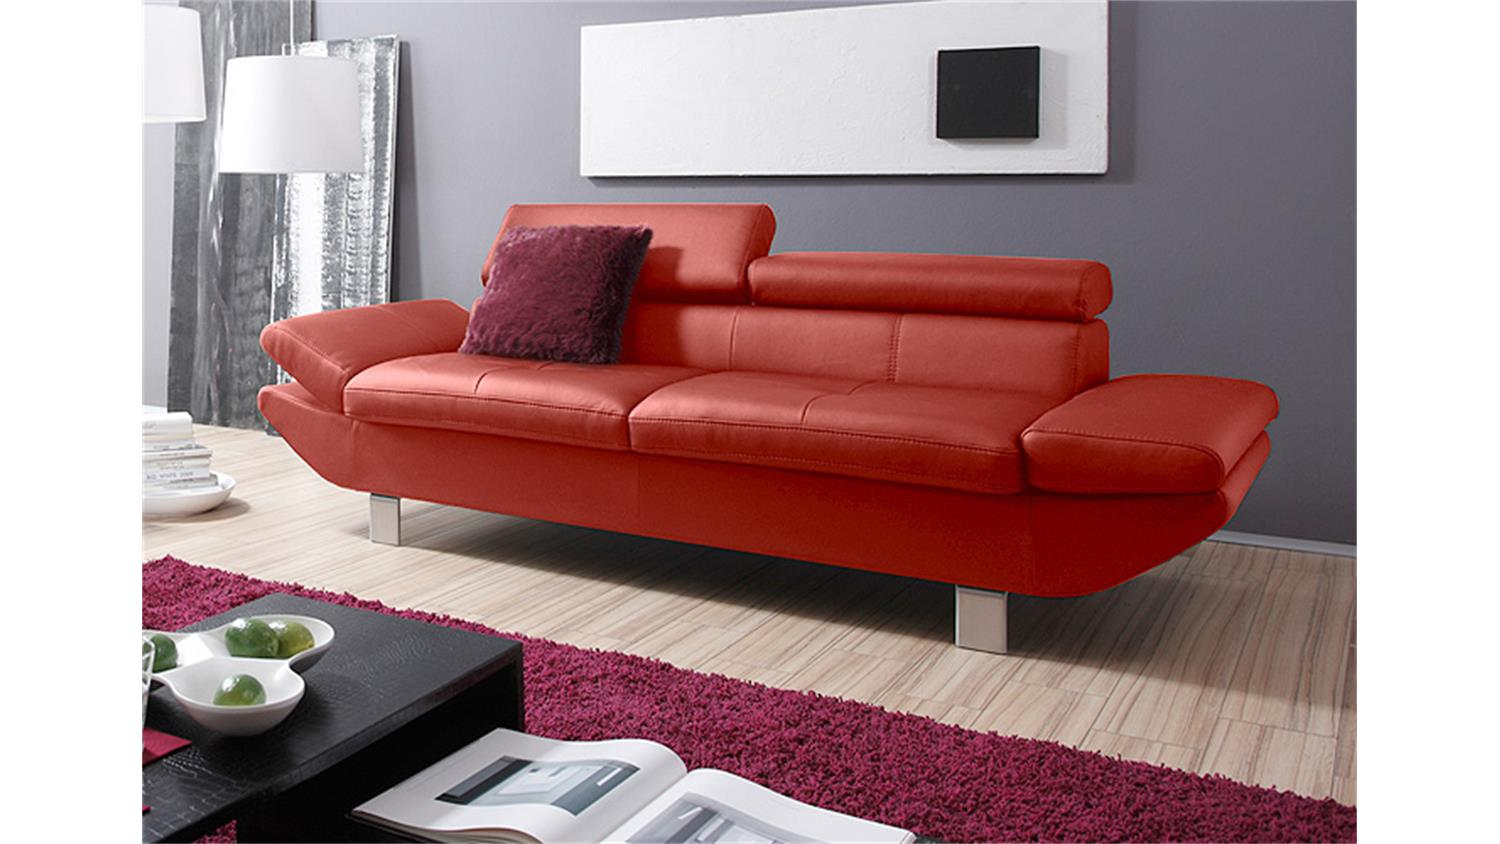 Polstermöbel Garnitur Sofa Garnitur Carrier Polstermöbel Mit Relaxfunkion In Rot